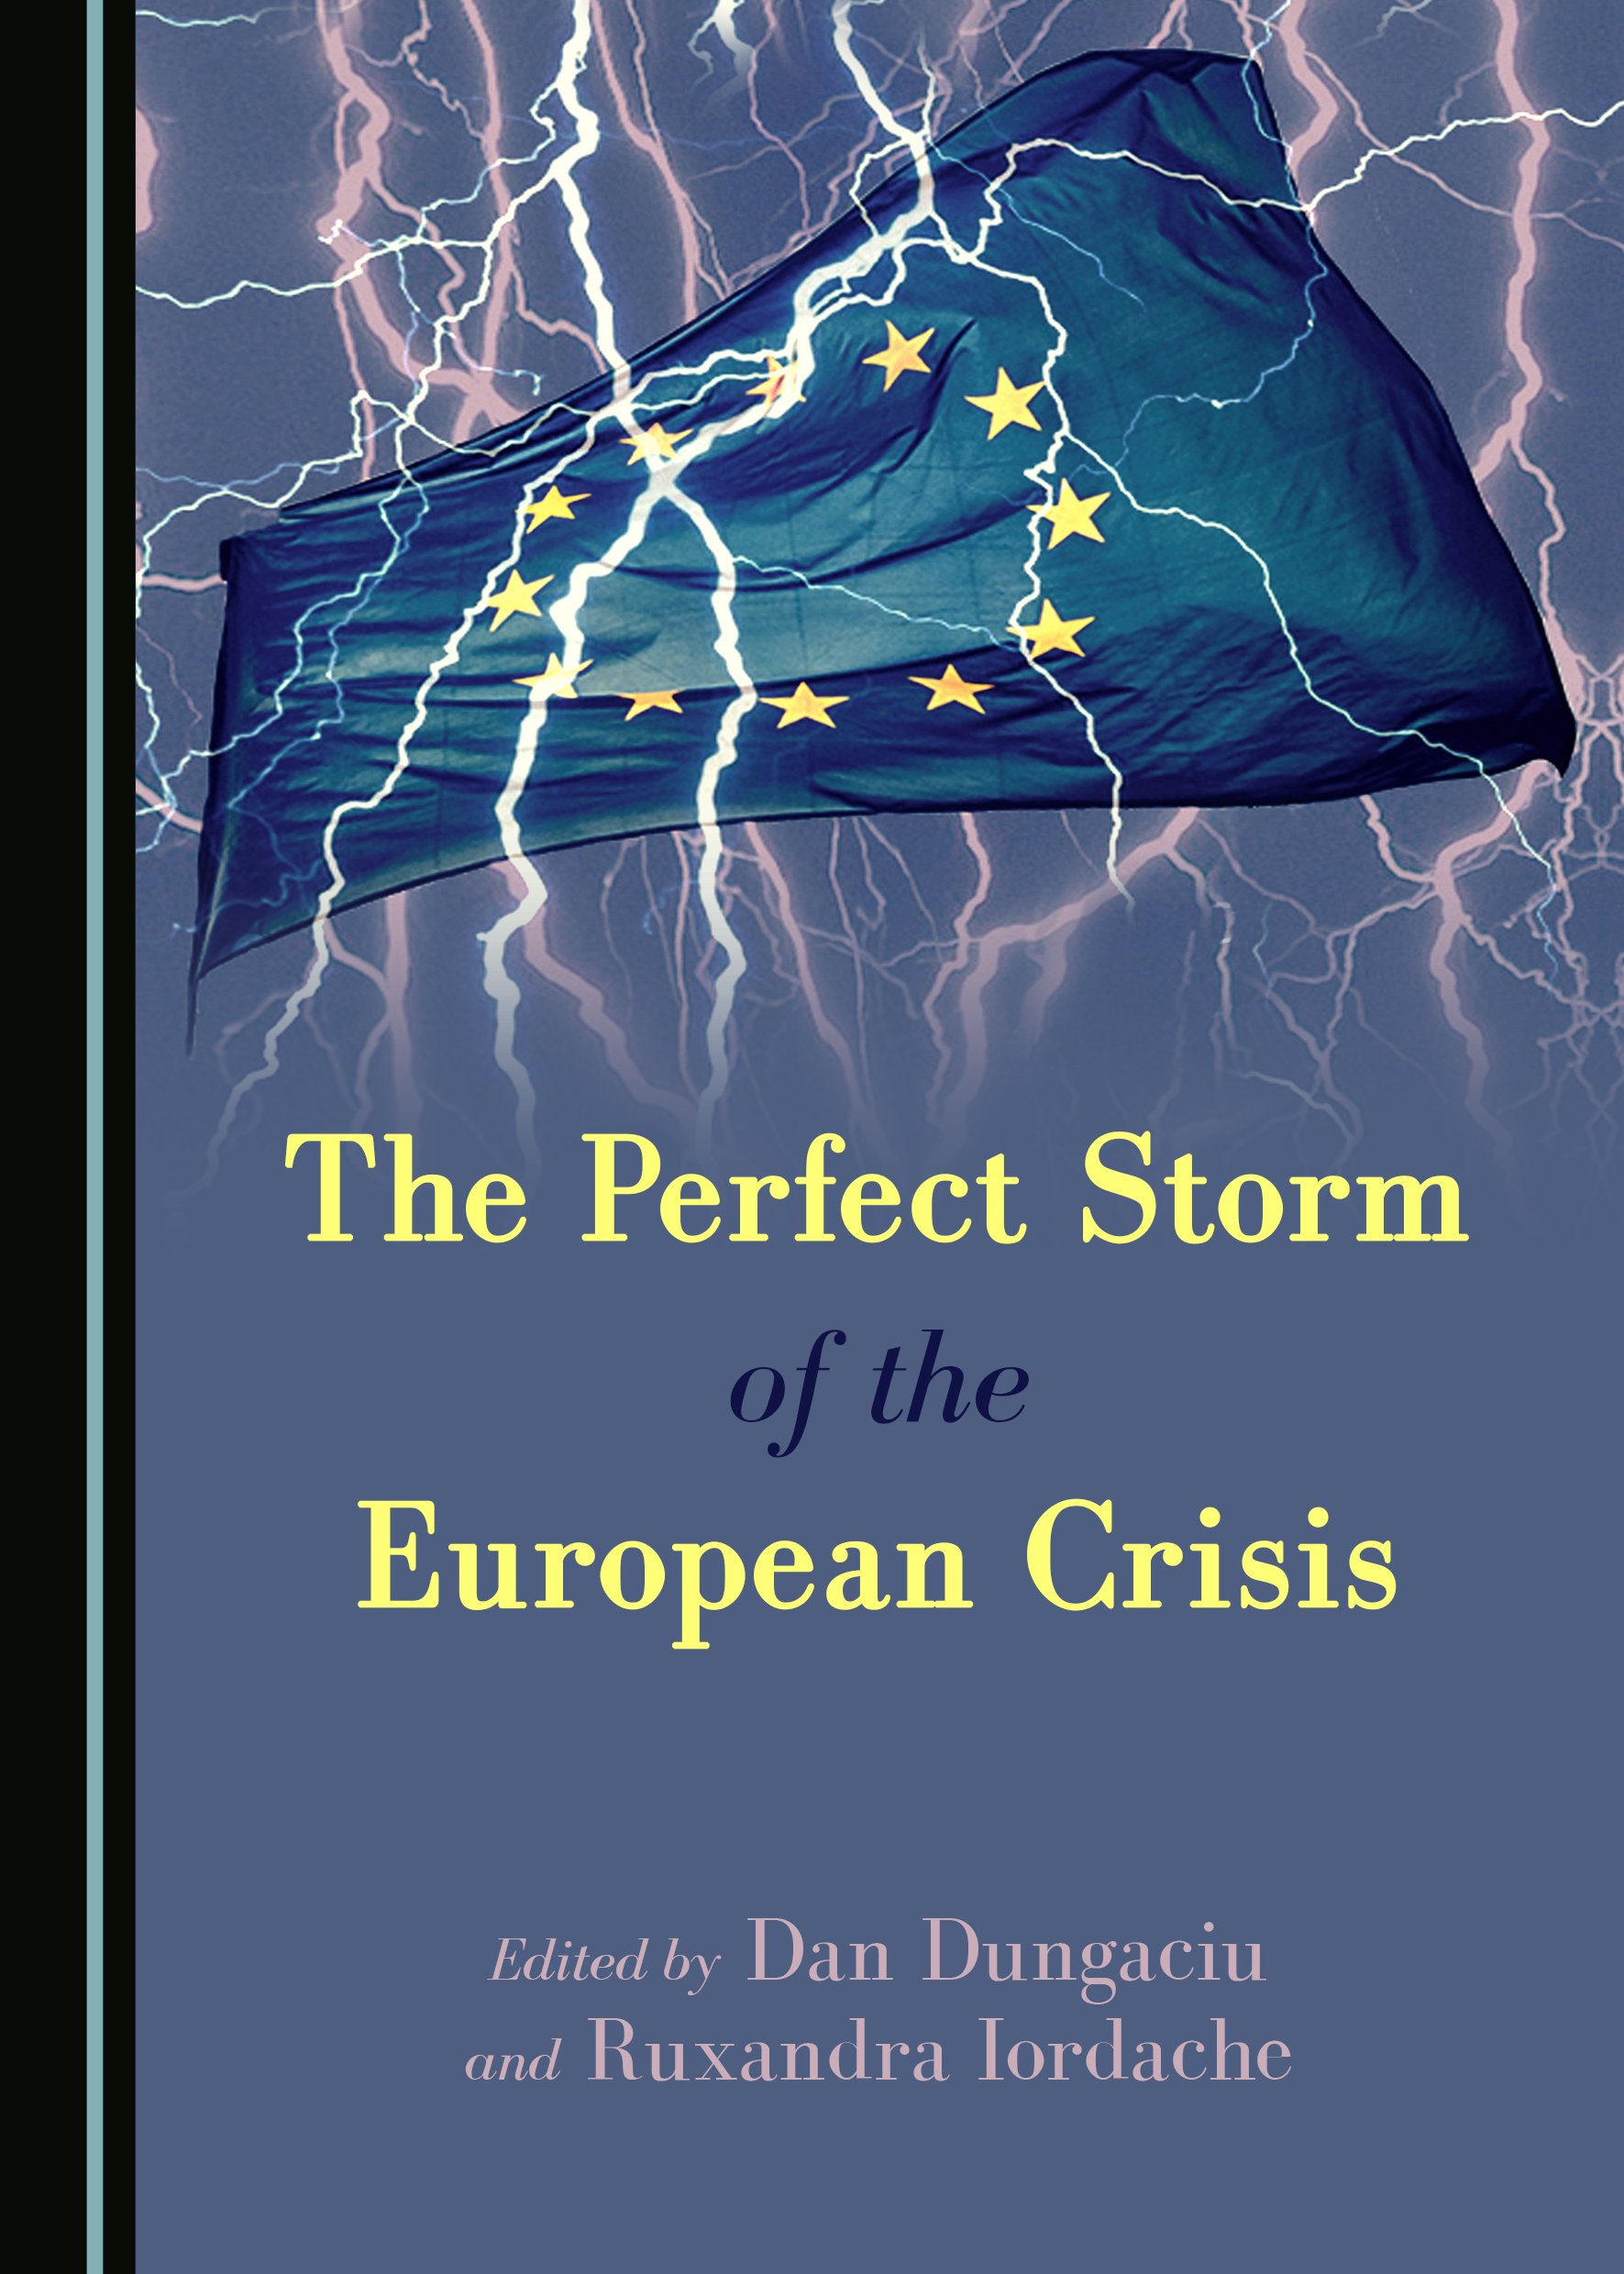 The Perfect Storm of the European Crisis